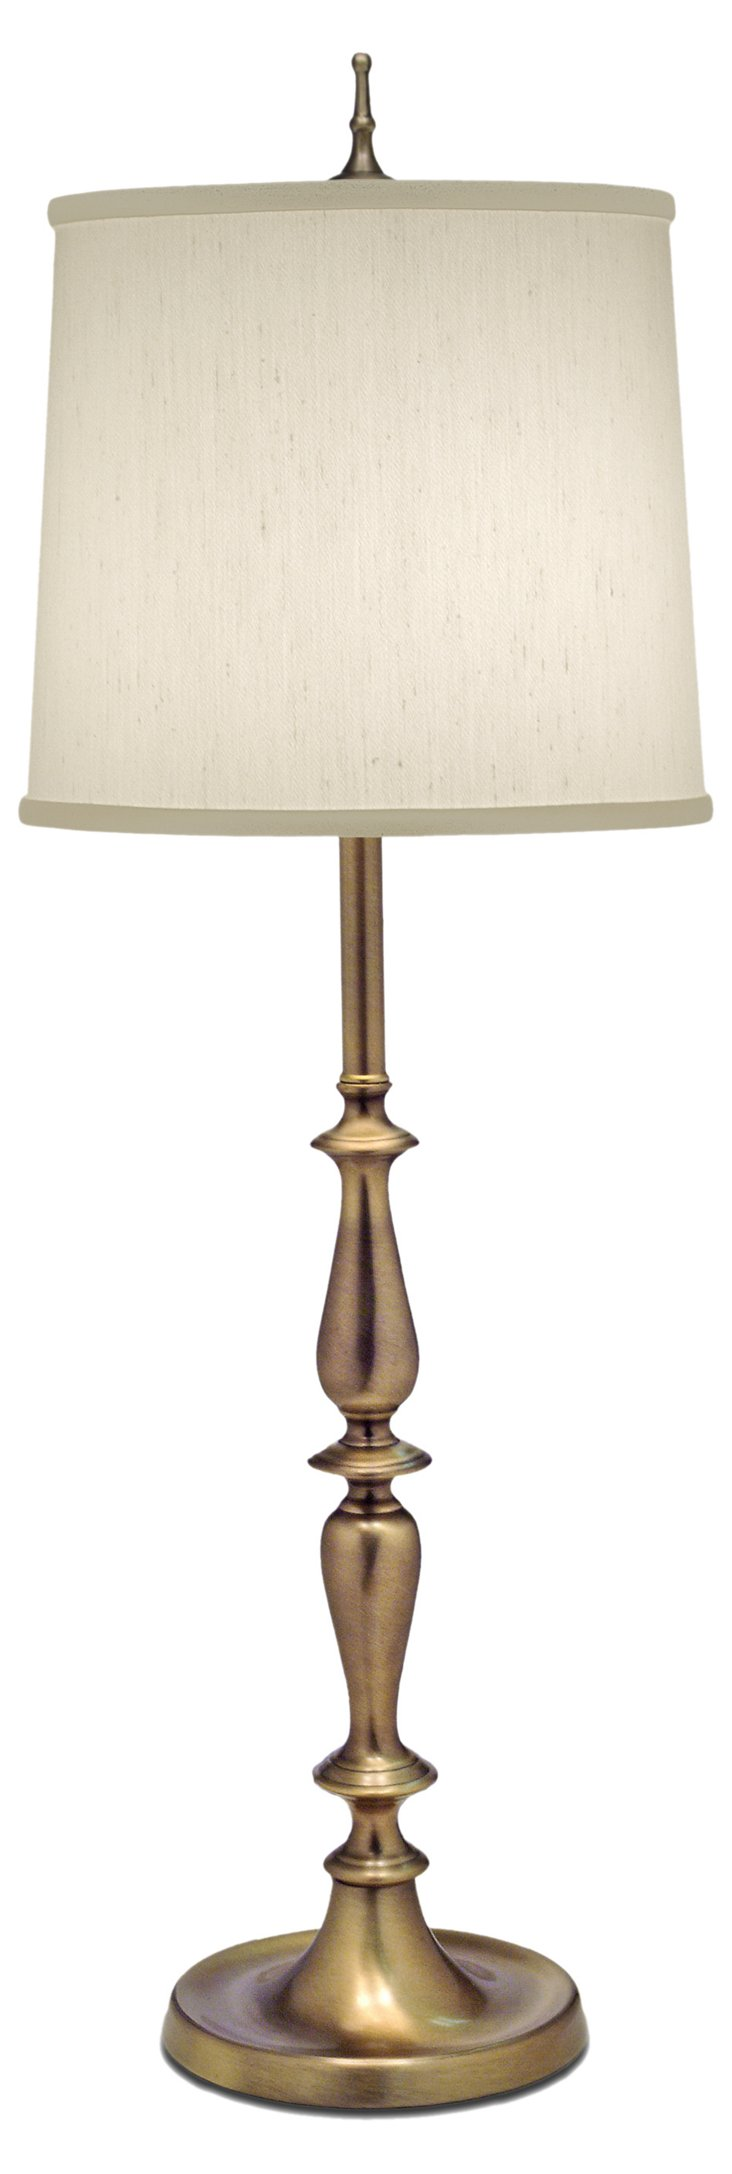 Isabela Table Lamp, Brass